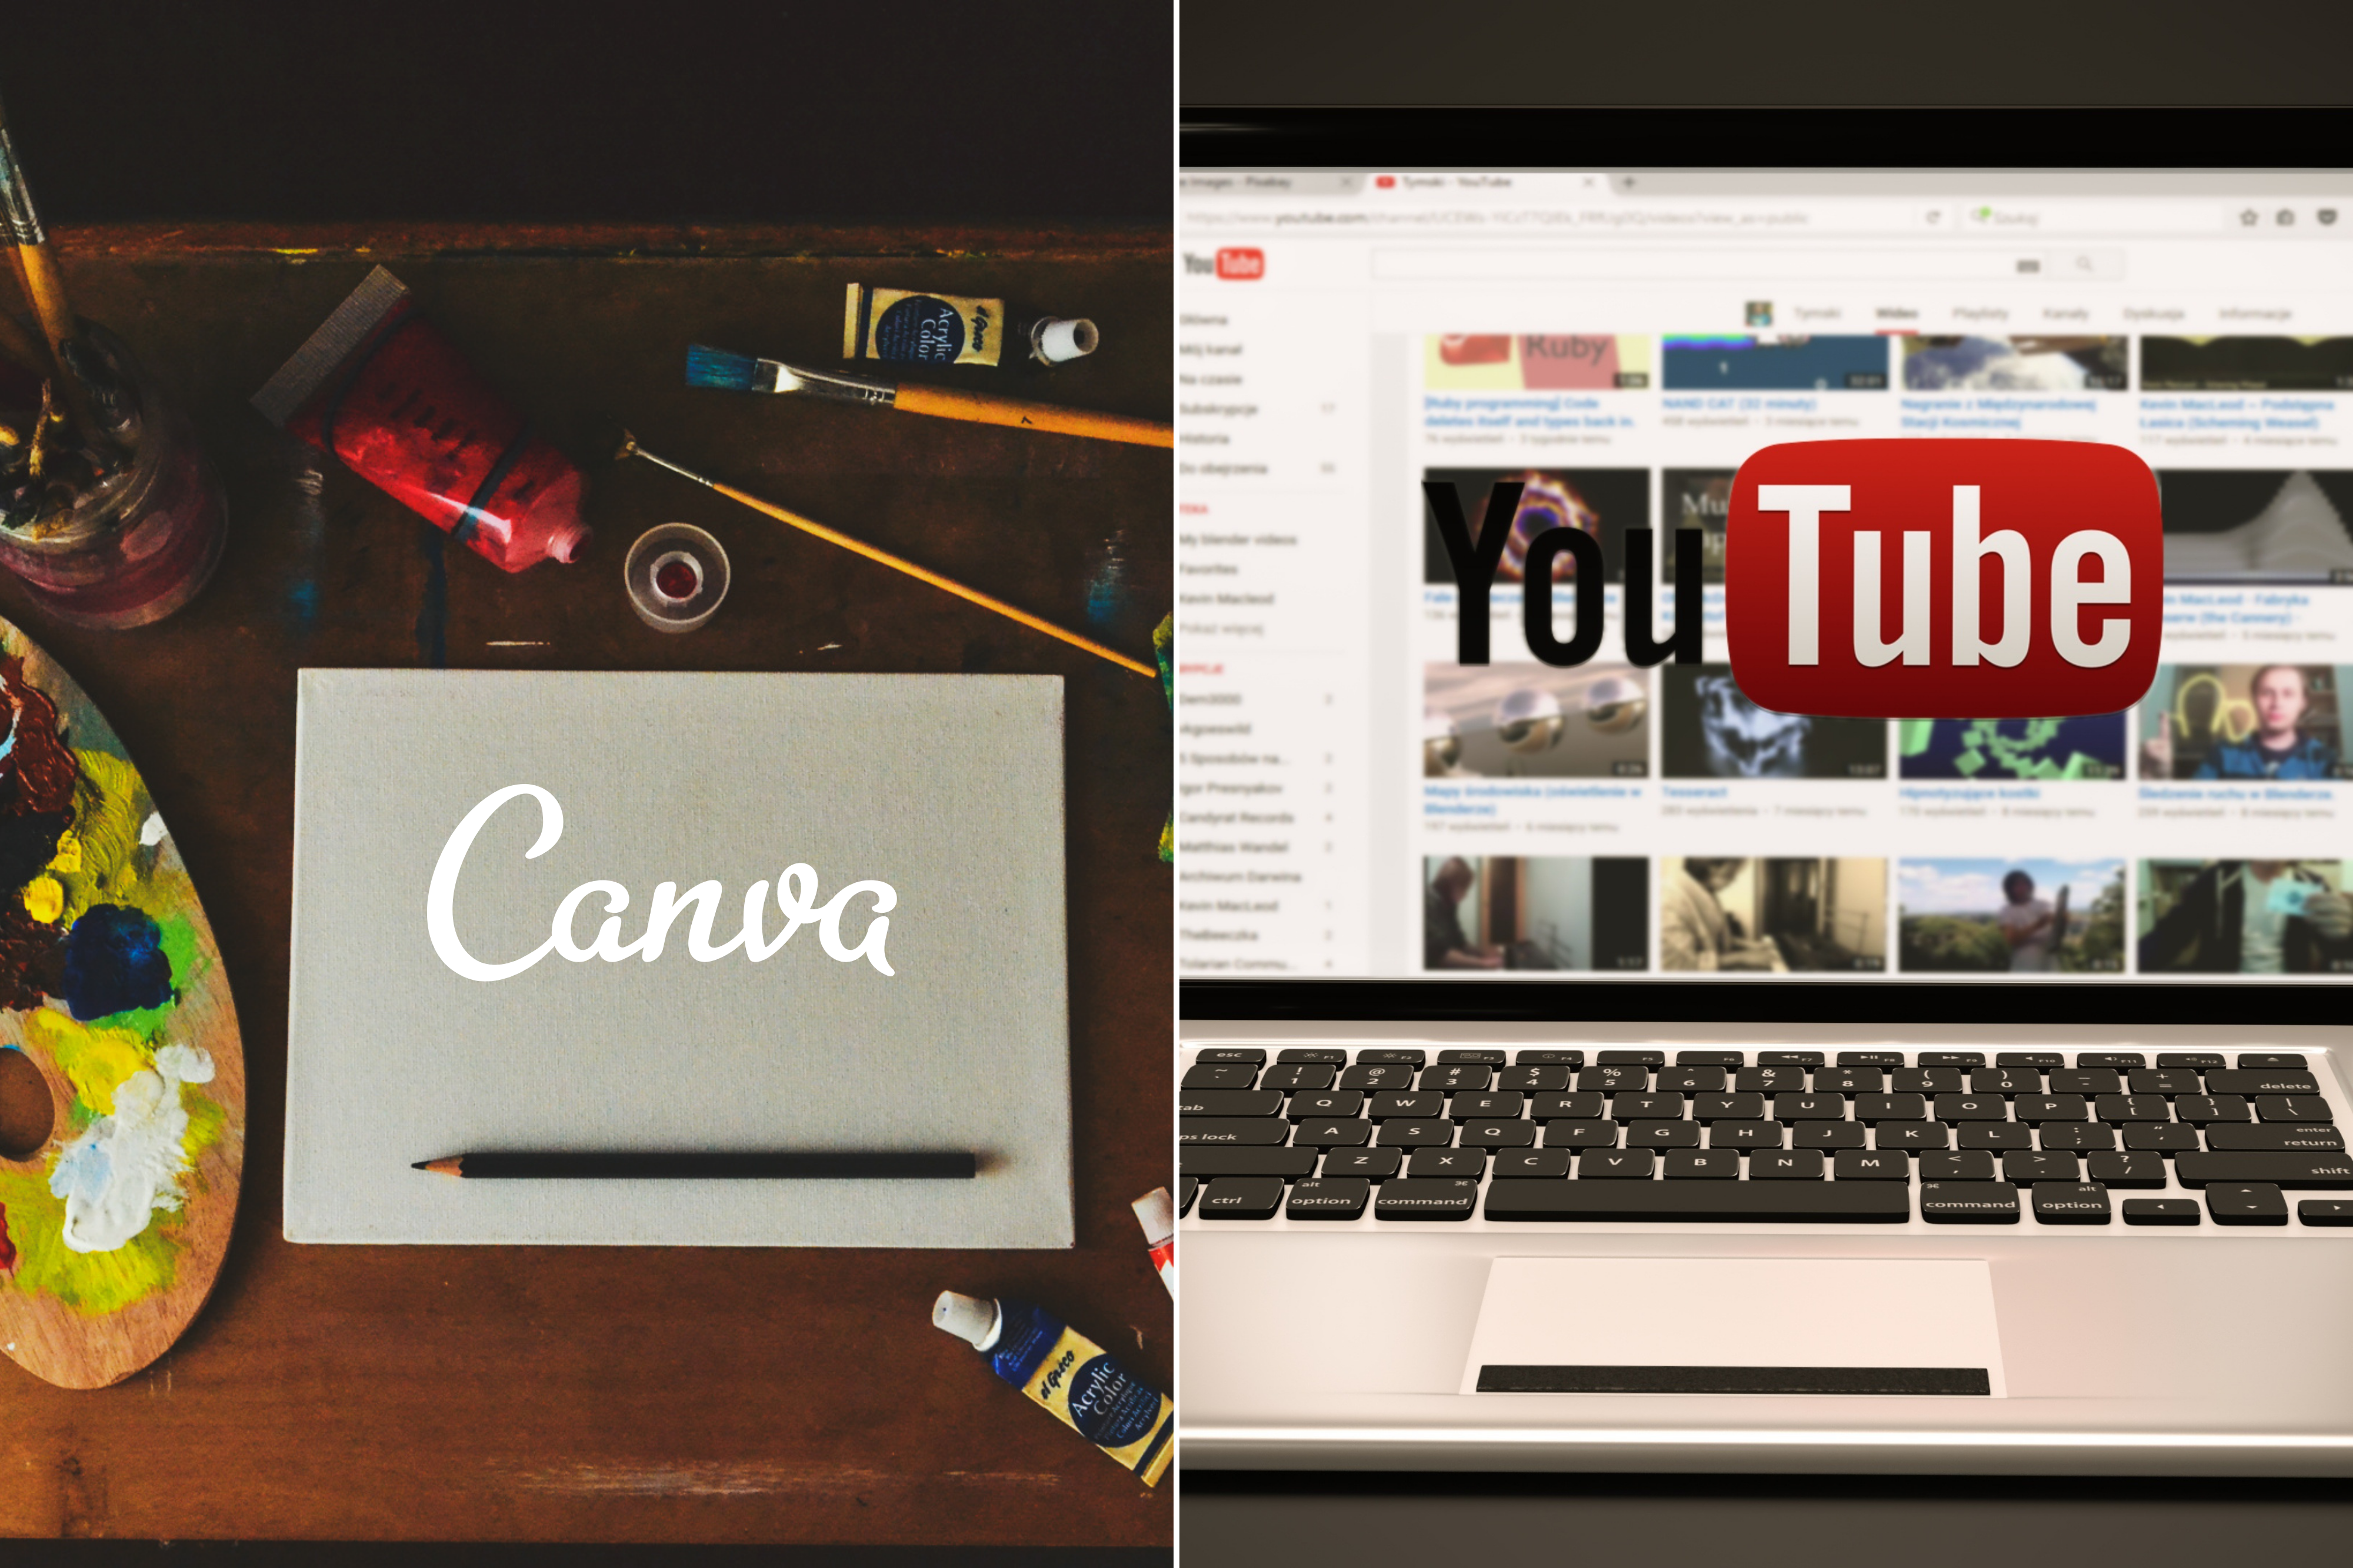 A canvas and an Apple laptop with the word YouTube shown side by side.